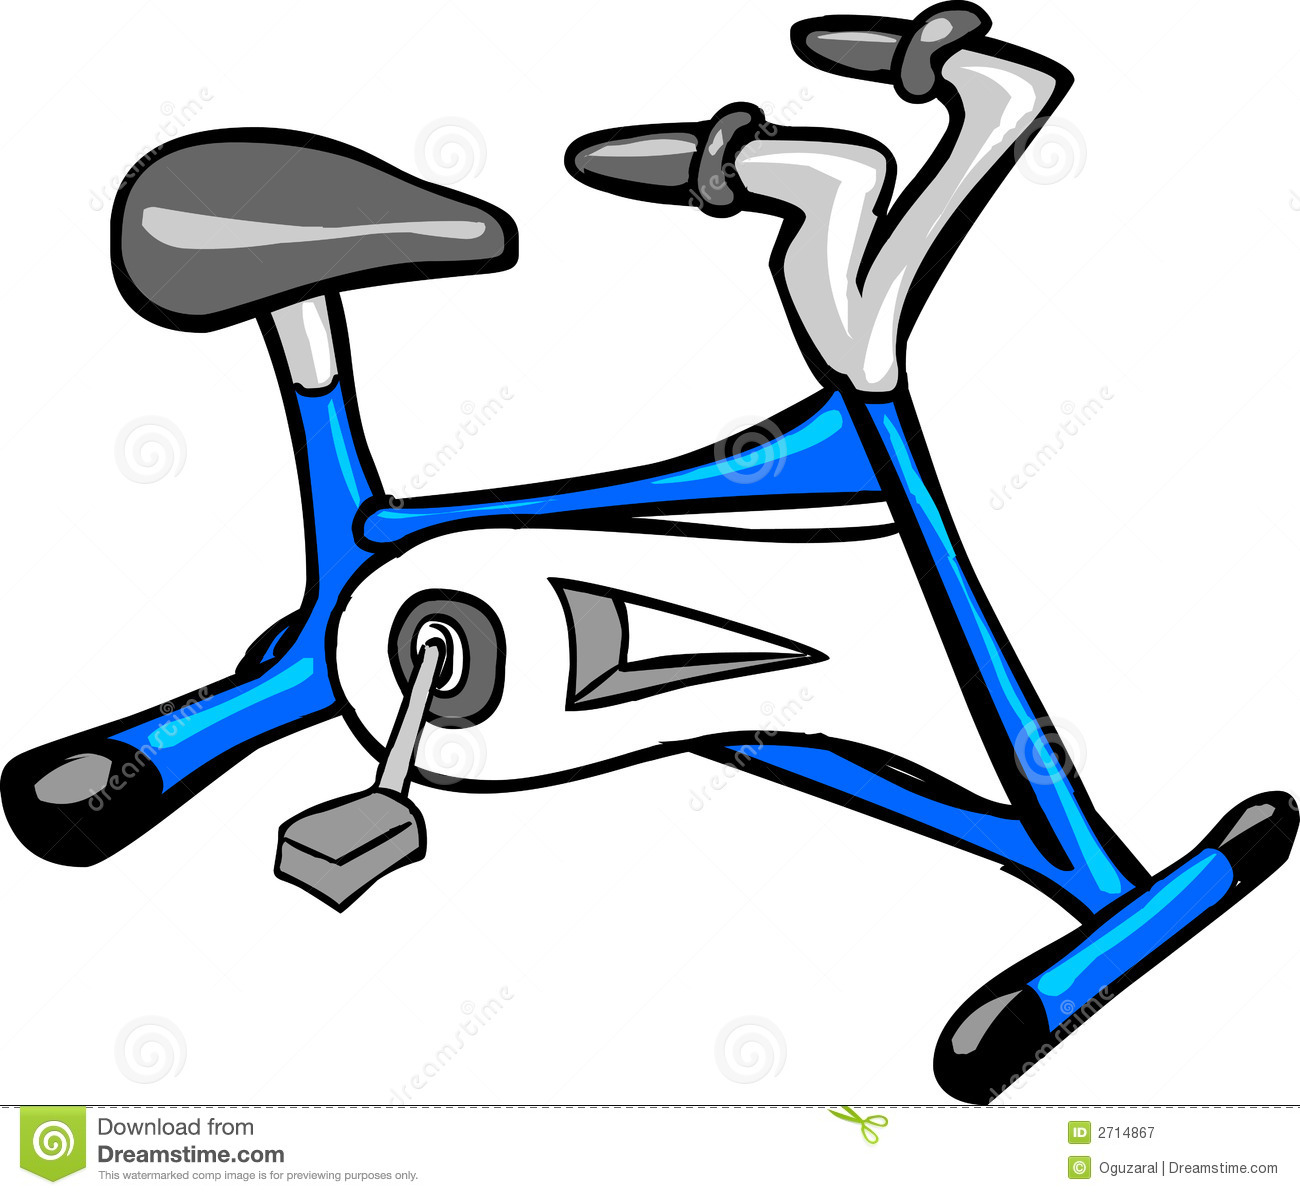 Work out equipment clipart clip stock Exercise Equipment Clipart - Clipart Kid clip stock